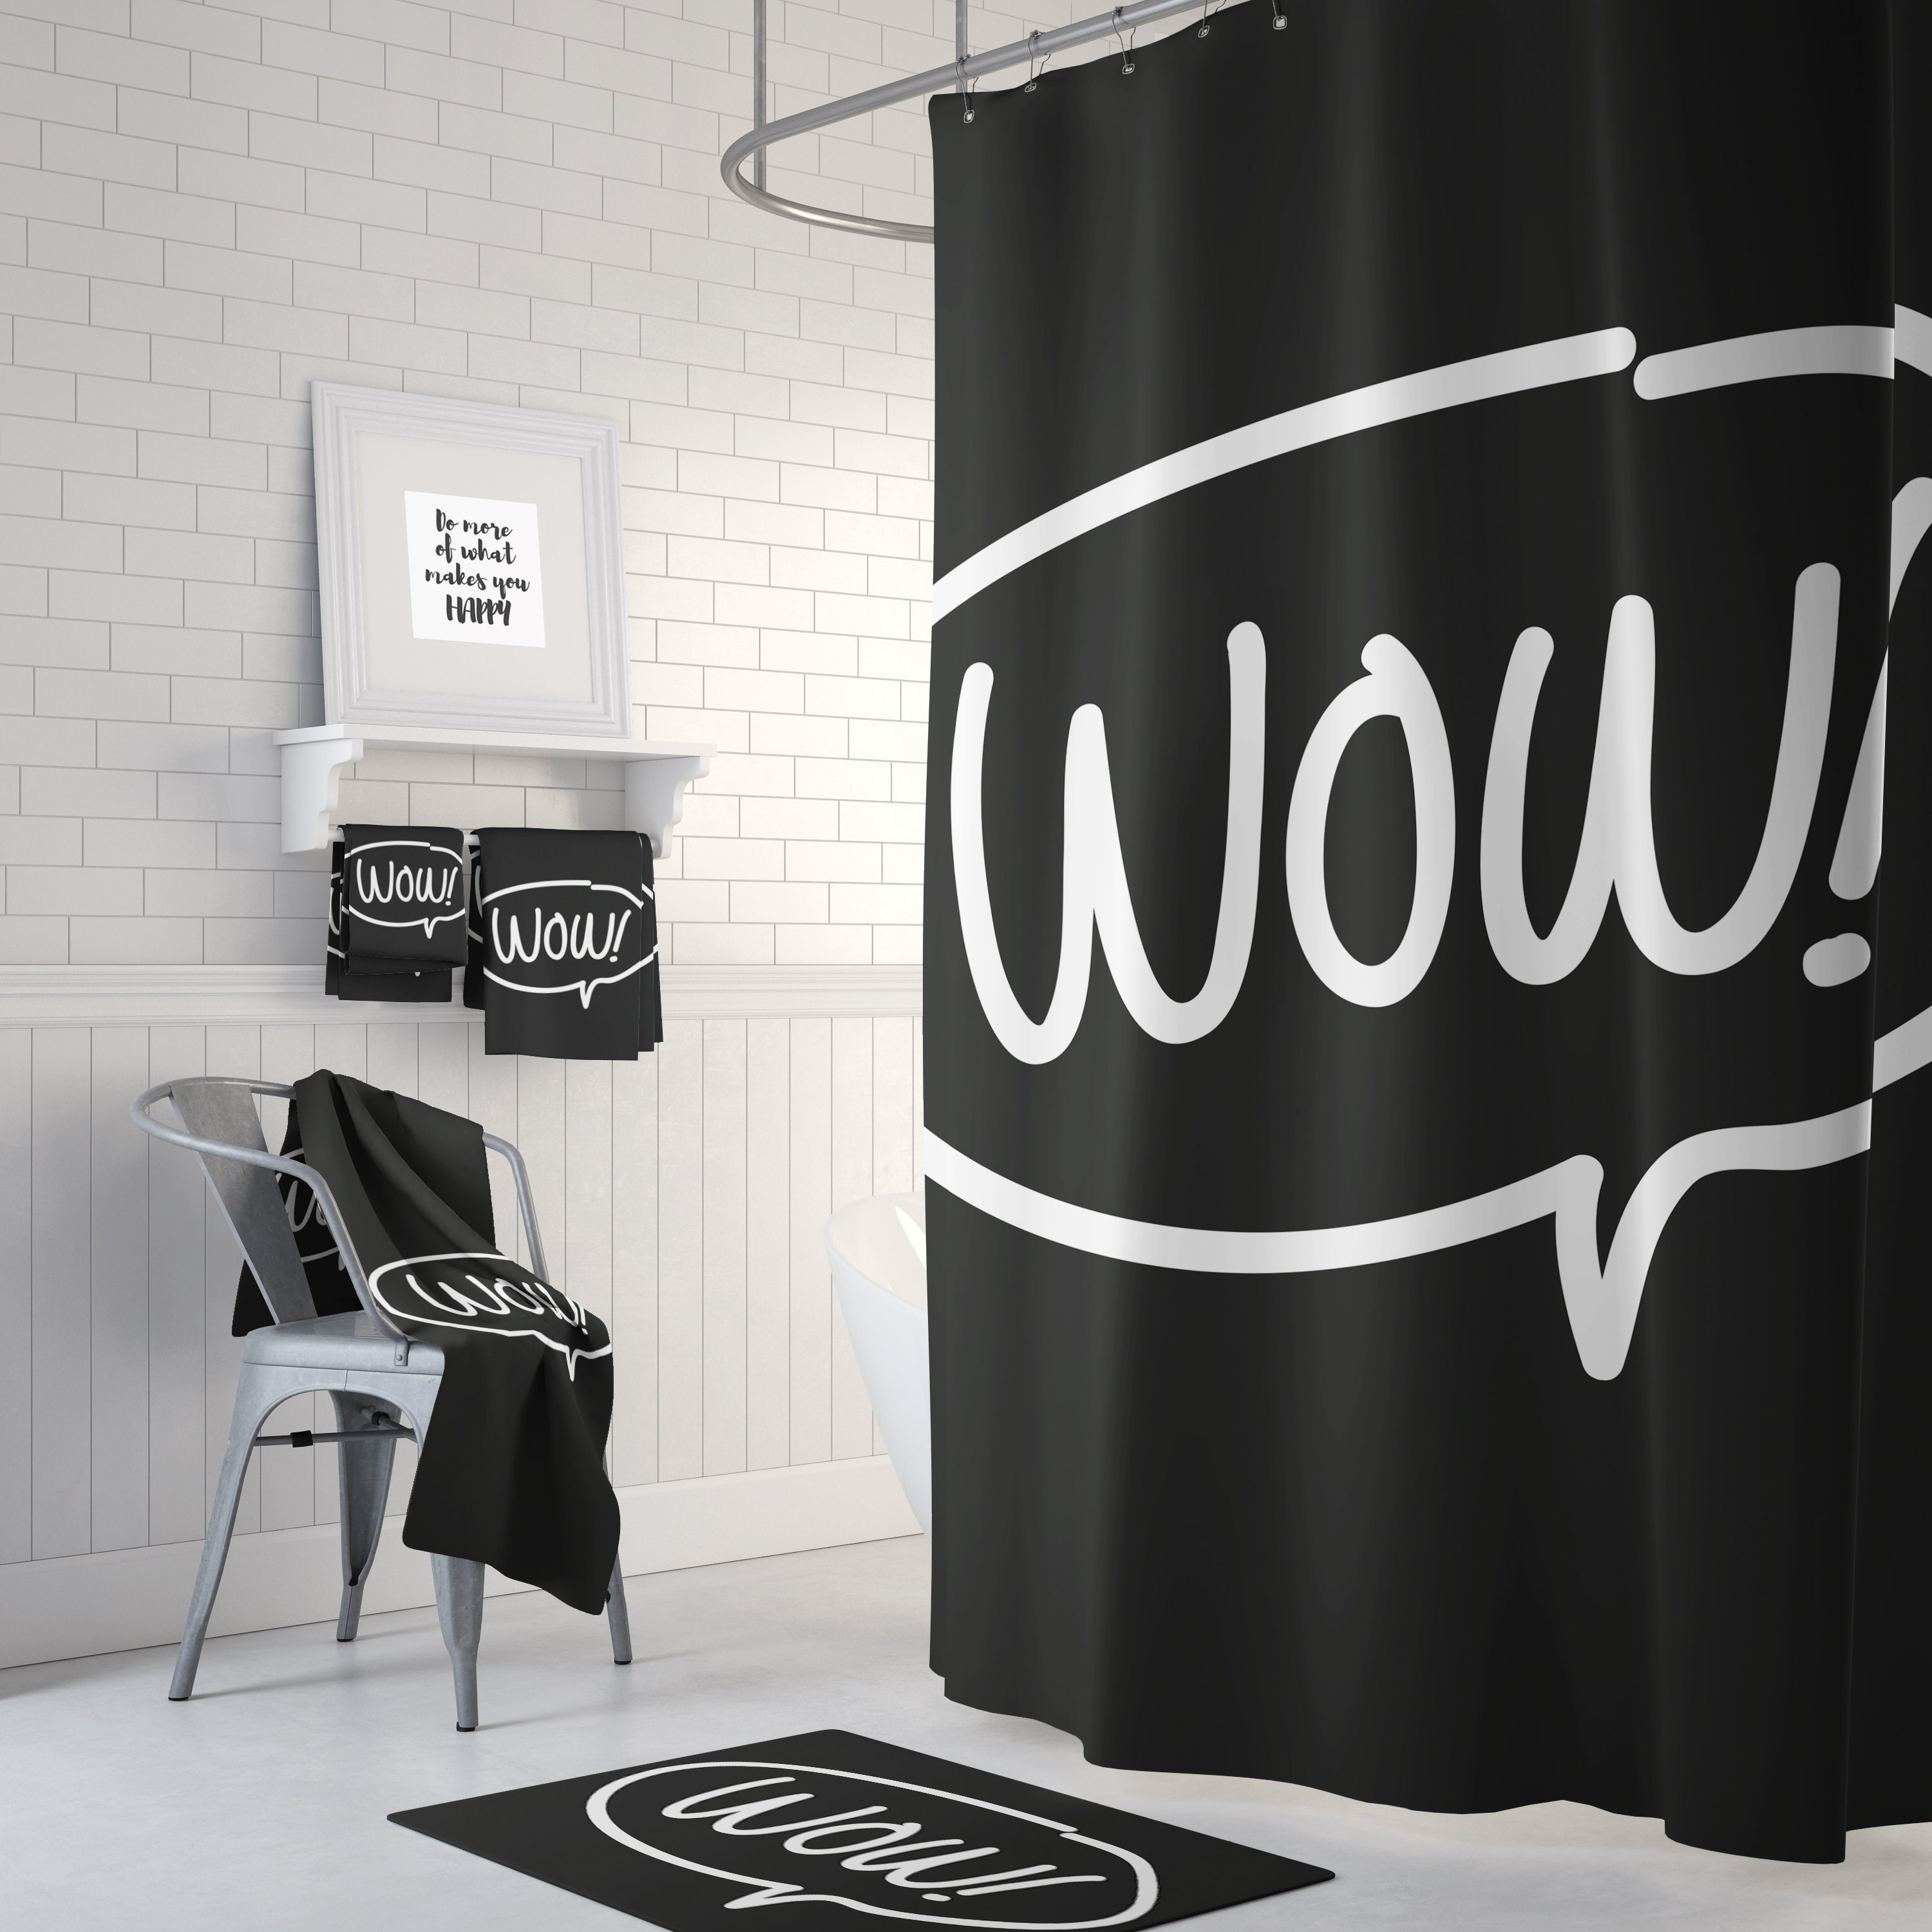 Black Wow Shower Curtain Funny Shower Curtain Bathroom Curtain Bath Decor Black Bathroom Decor